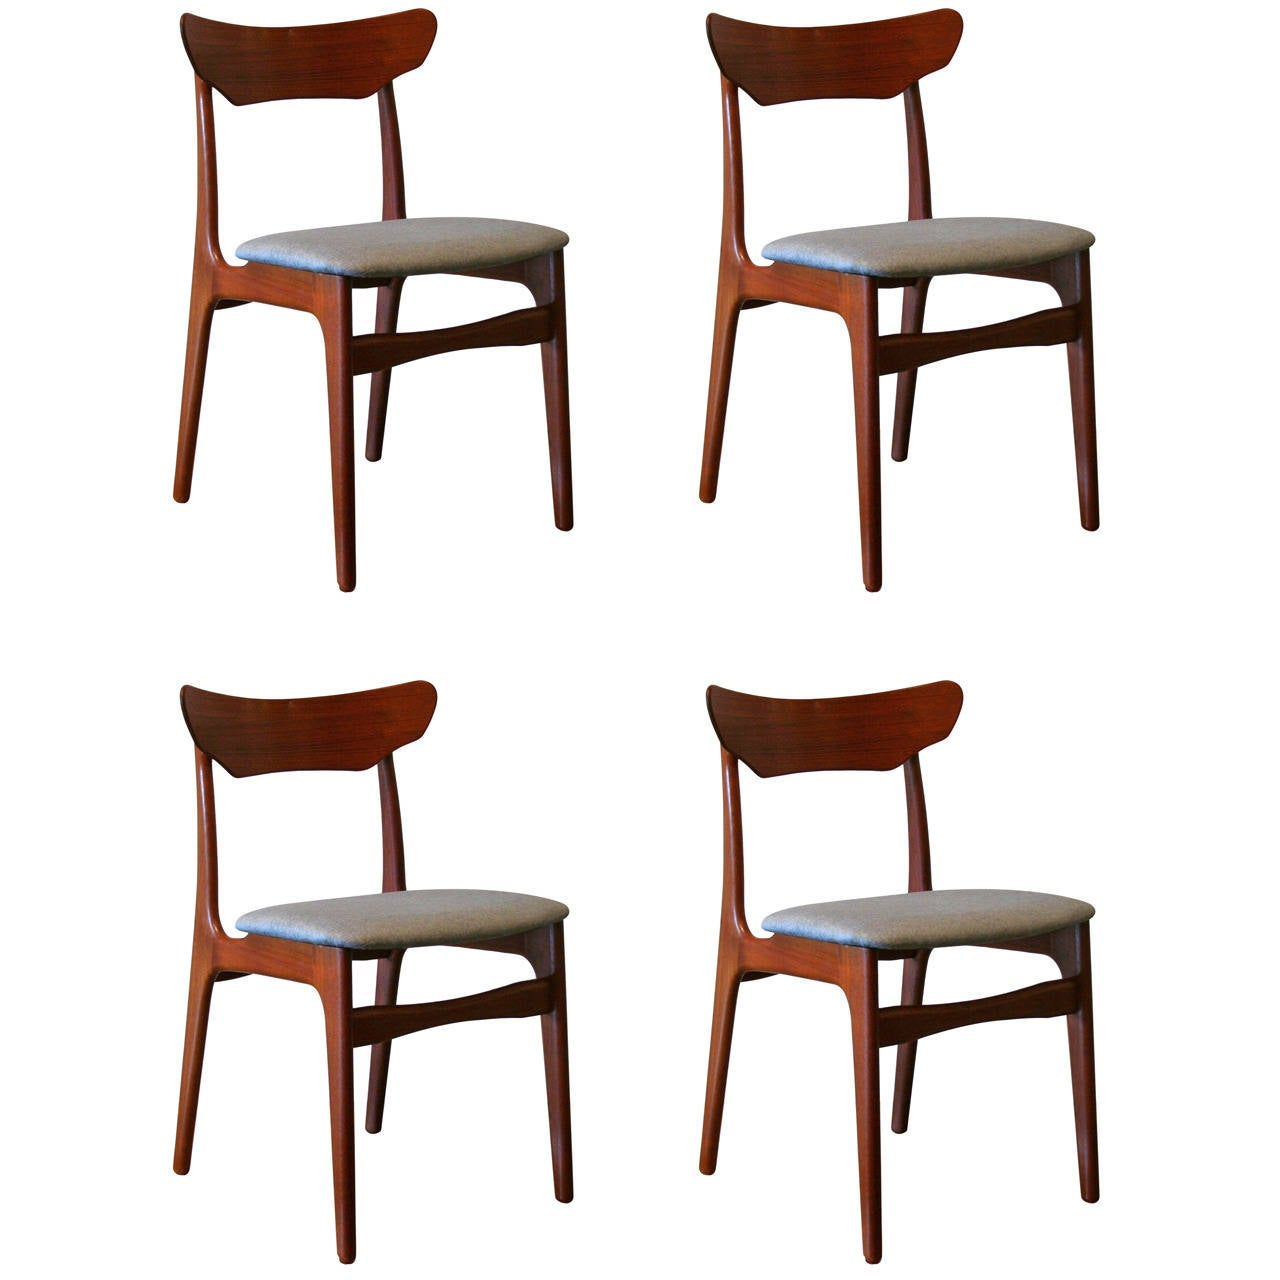 Vintage Danish Teak Dining Chairs at 1stdibs